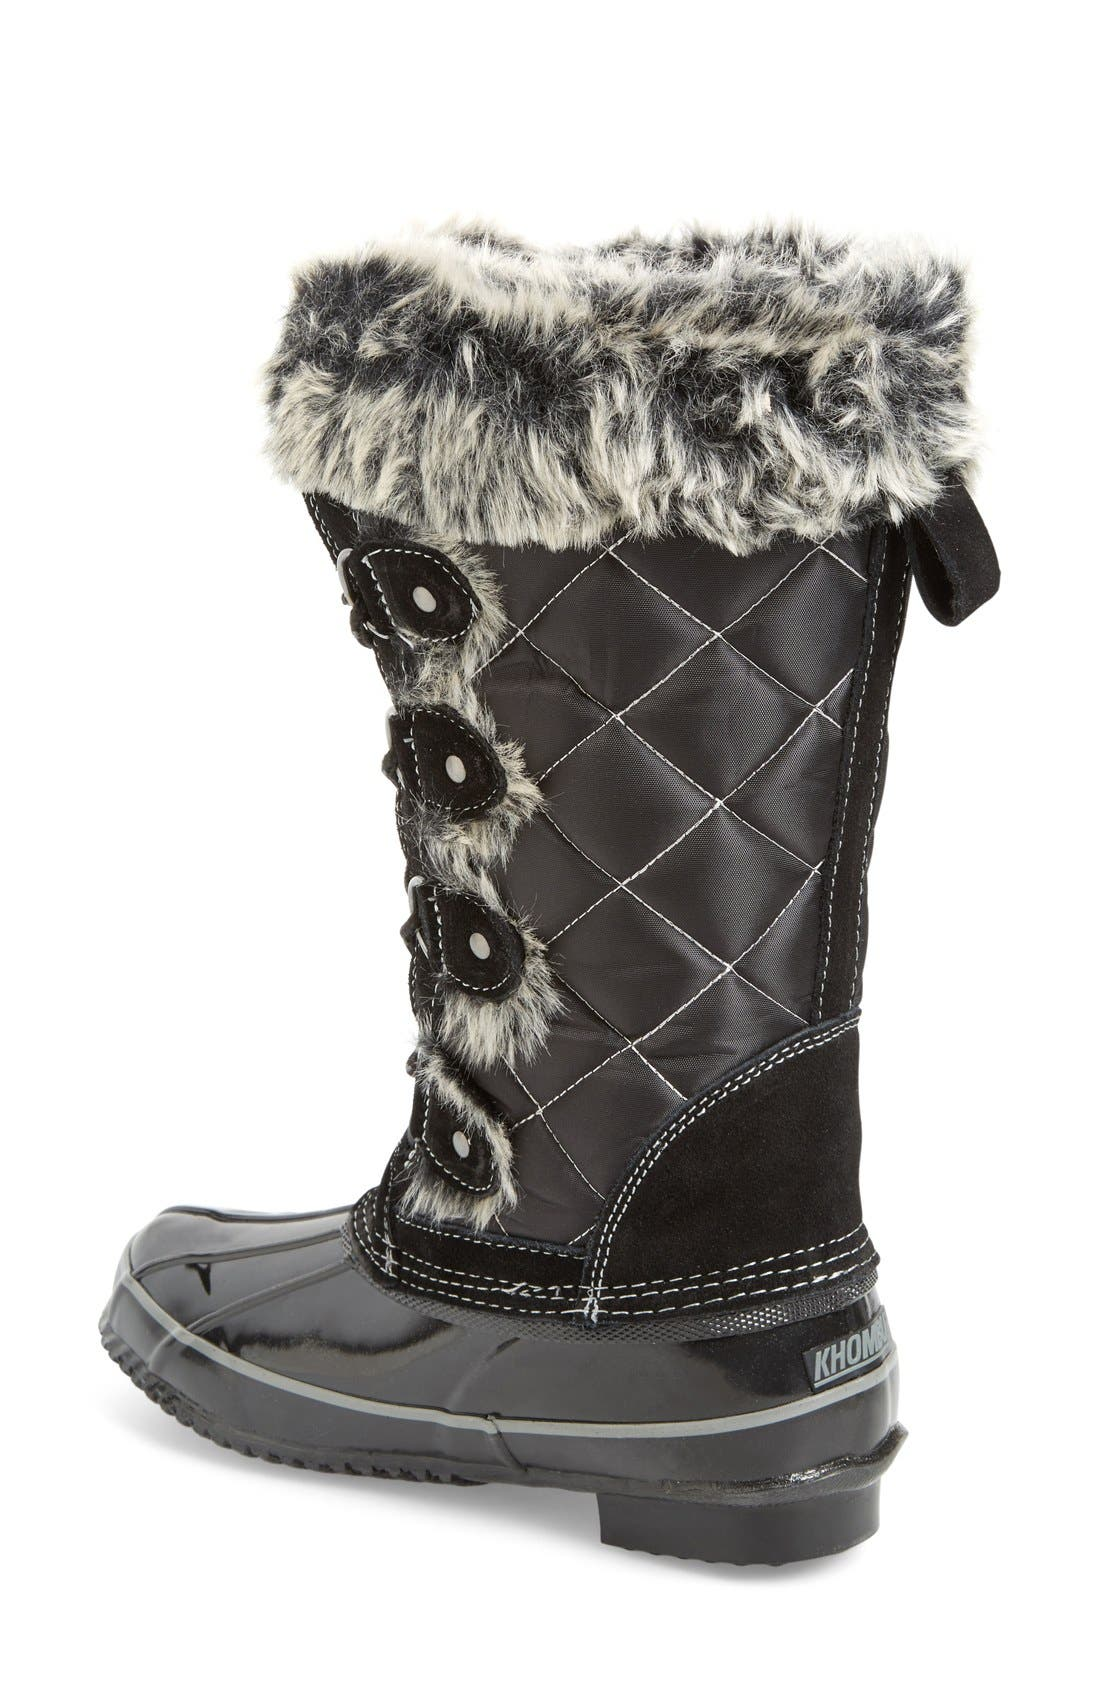 Waterproof Lace-Up Boot,                             Alternate thumbnail 4, color,                             001